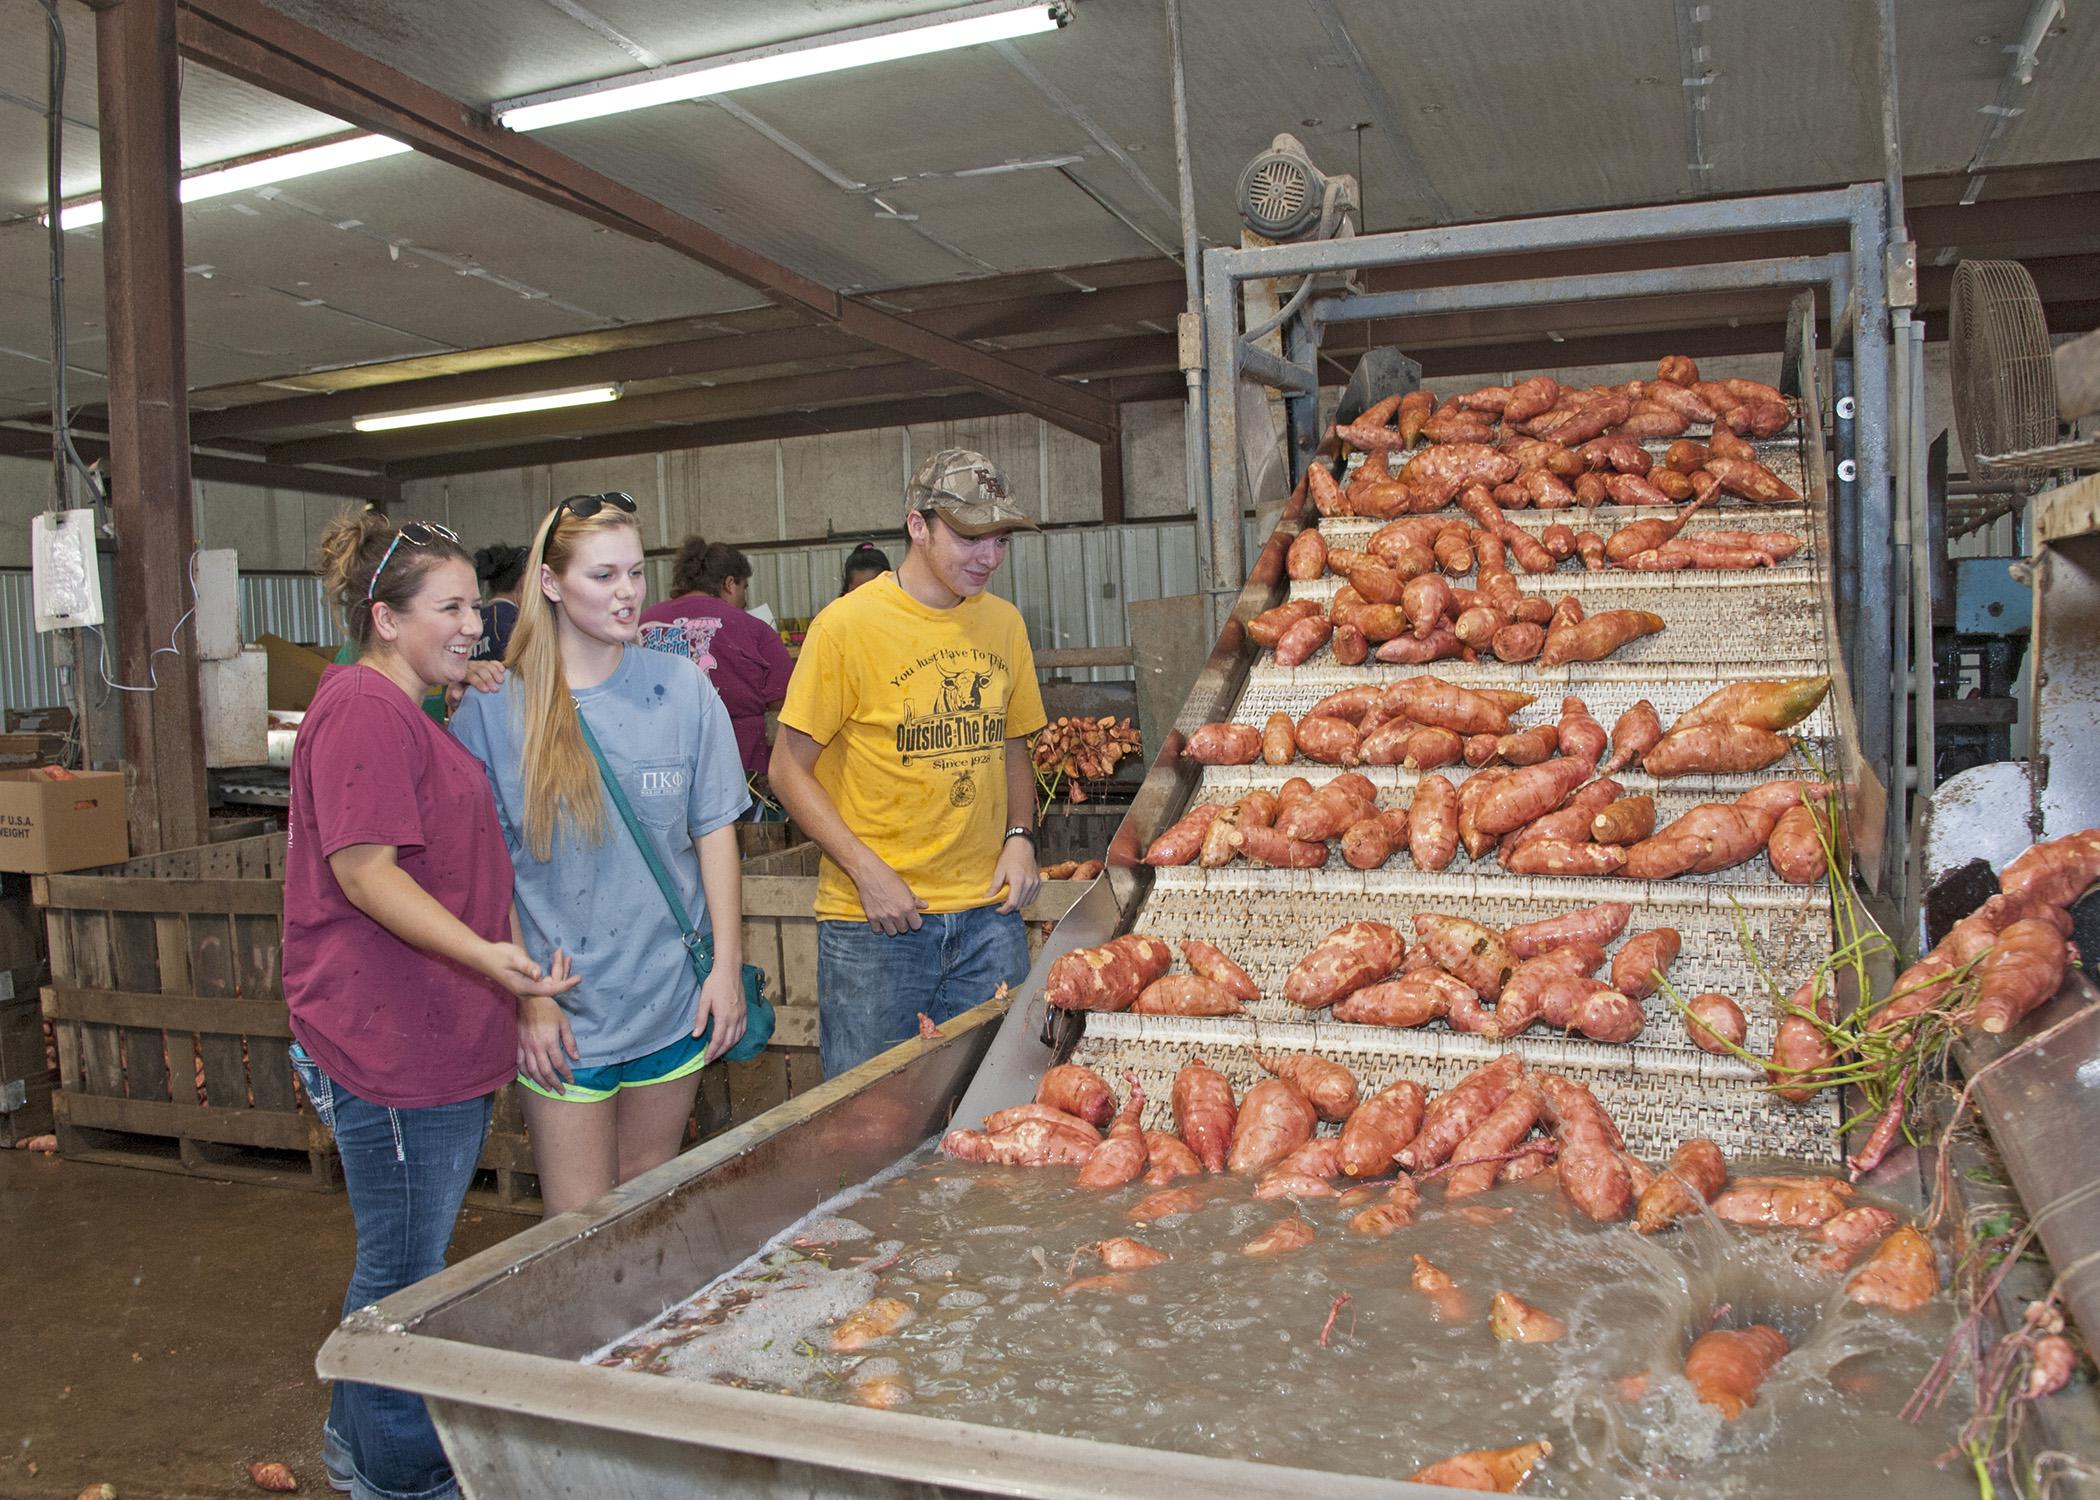 Mississippi State University students in the Department of Food Science, Nutrition and Health Promotion (from left) Morgan Von Staden, Hanna Olstad and Andrew Moorhead observe the washing process on a sweet potato packing line Sept. 5, 2014, in Vardaman, Mississippi. (Photo by MSU Ag Communications/Kat Lawrence)